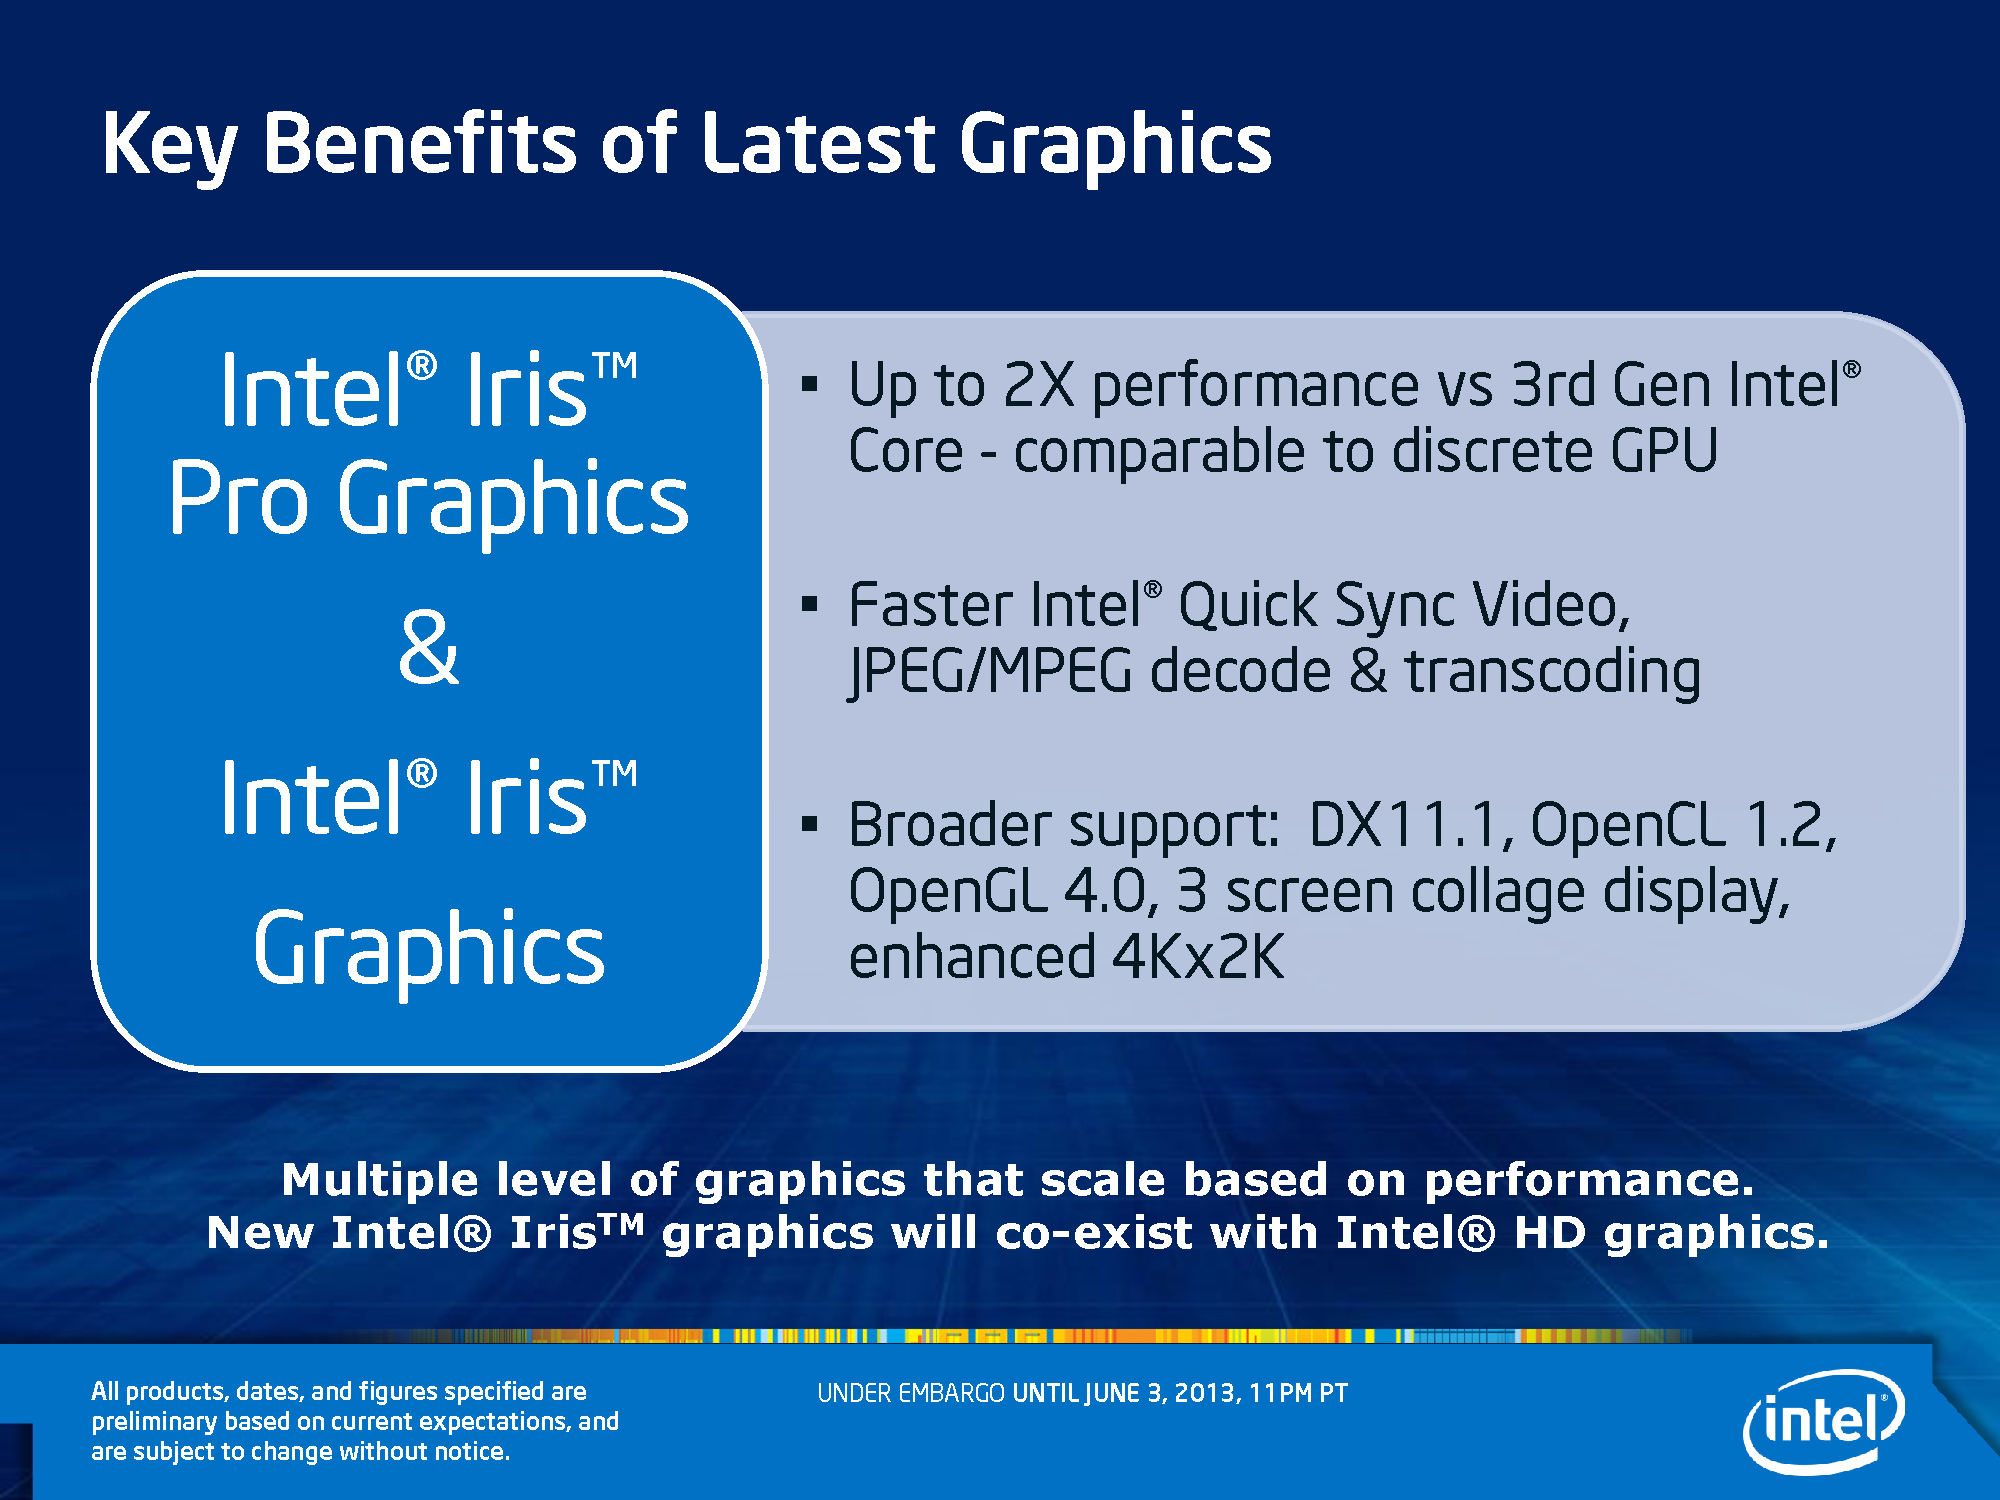 Intel's fourth-generation Core series delivers significantly